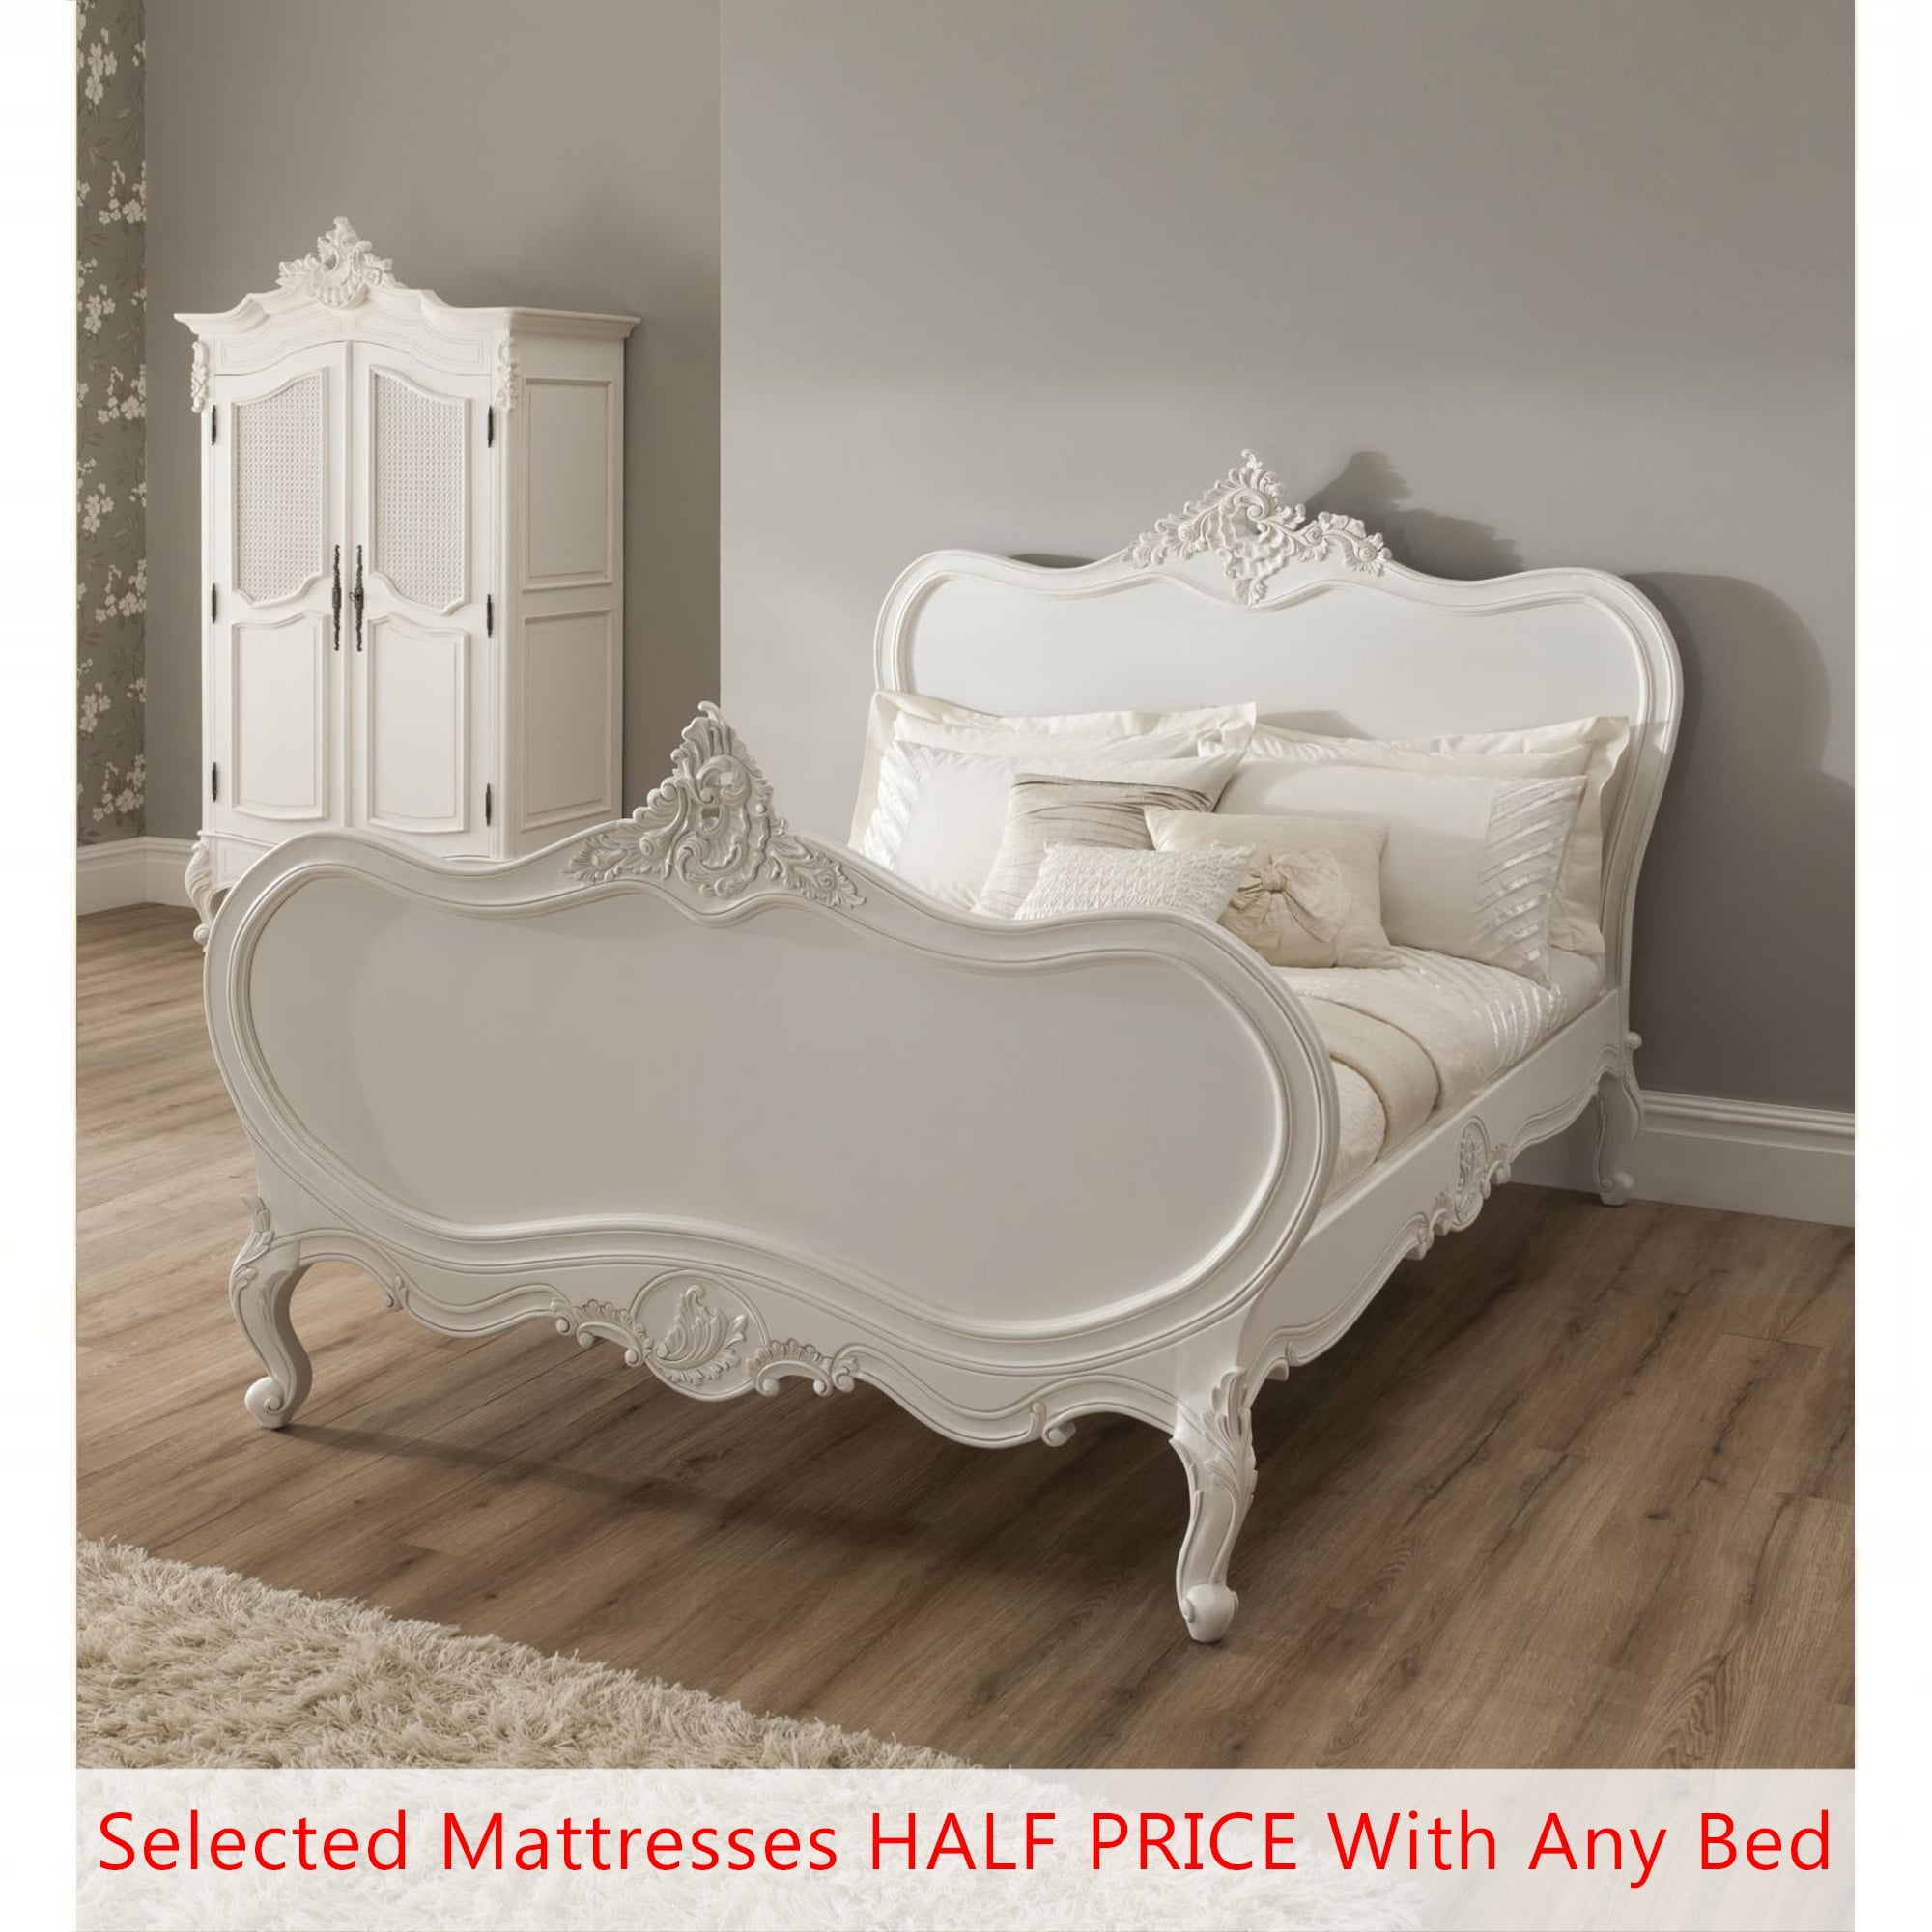 Half Price Mattress And Bed Deal